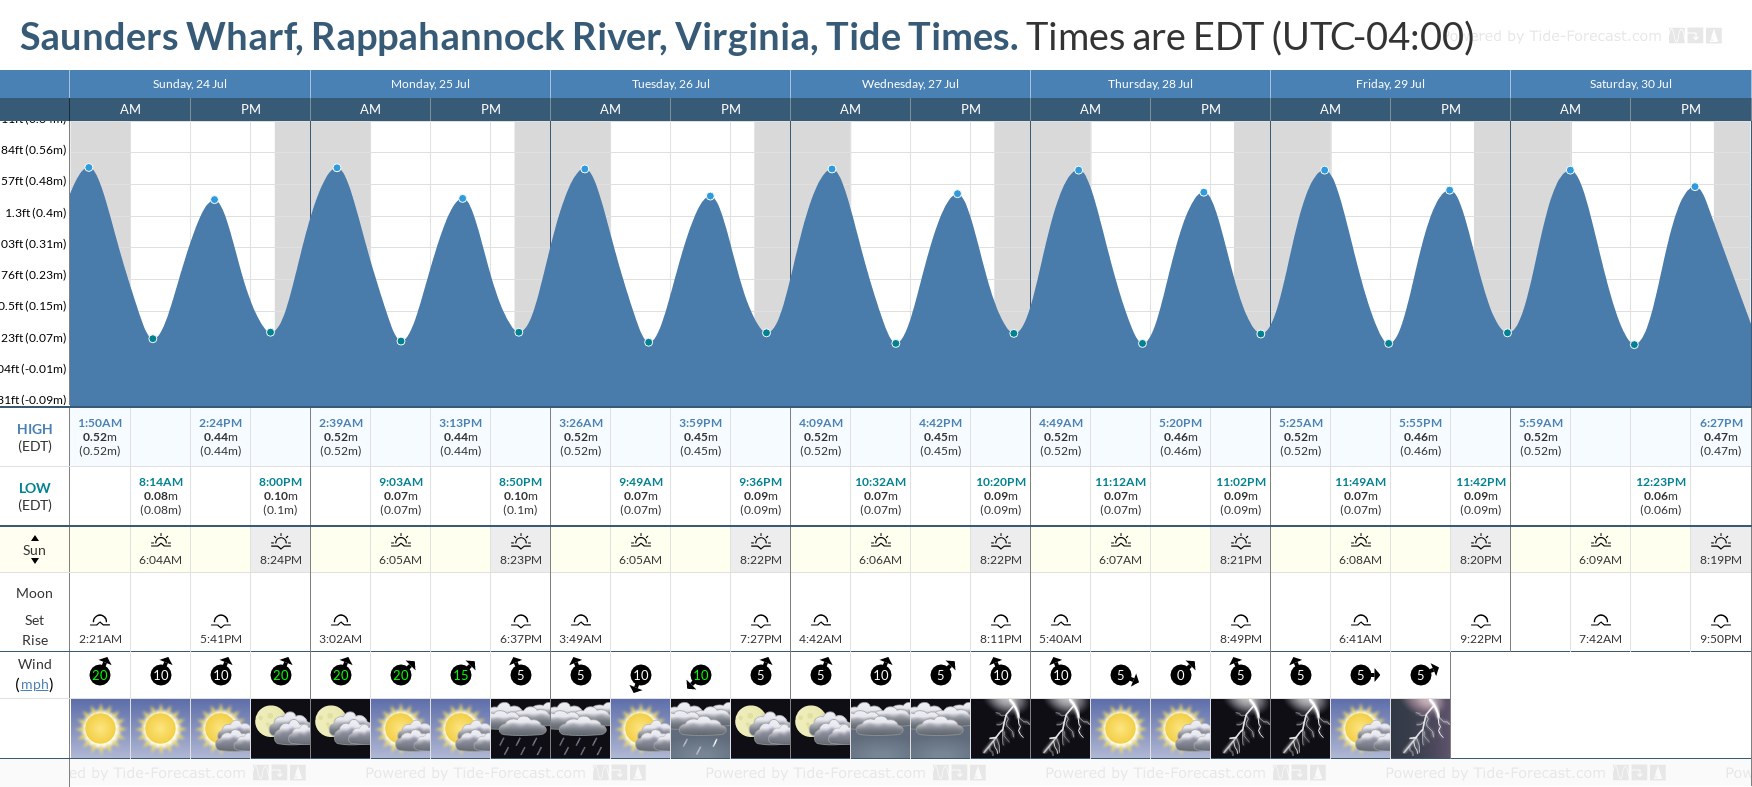 Saunders Wharf, Rappahannock River, Virginia Tide Chart including high and low tide tide times for the next 7 days